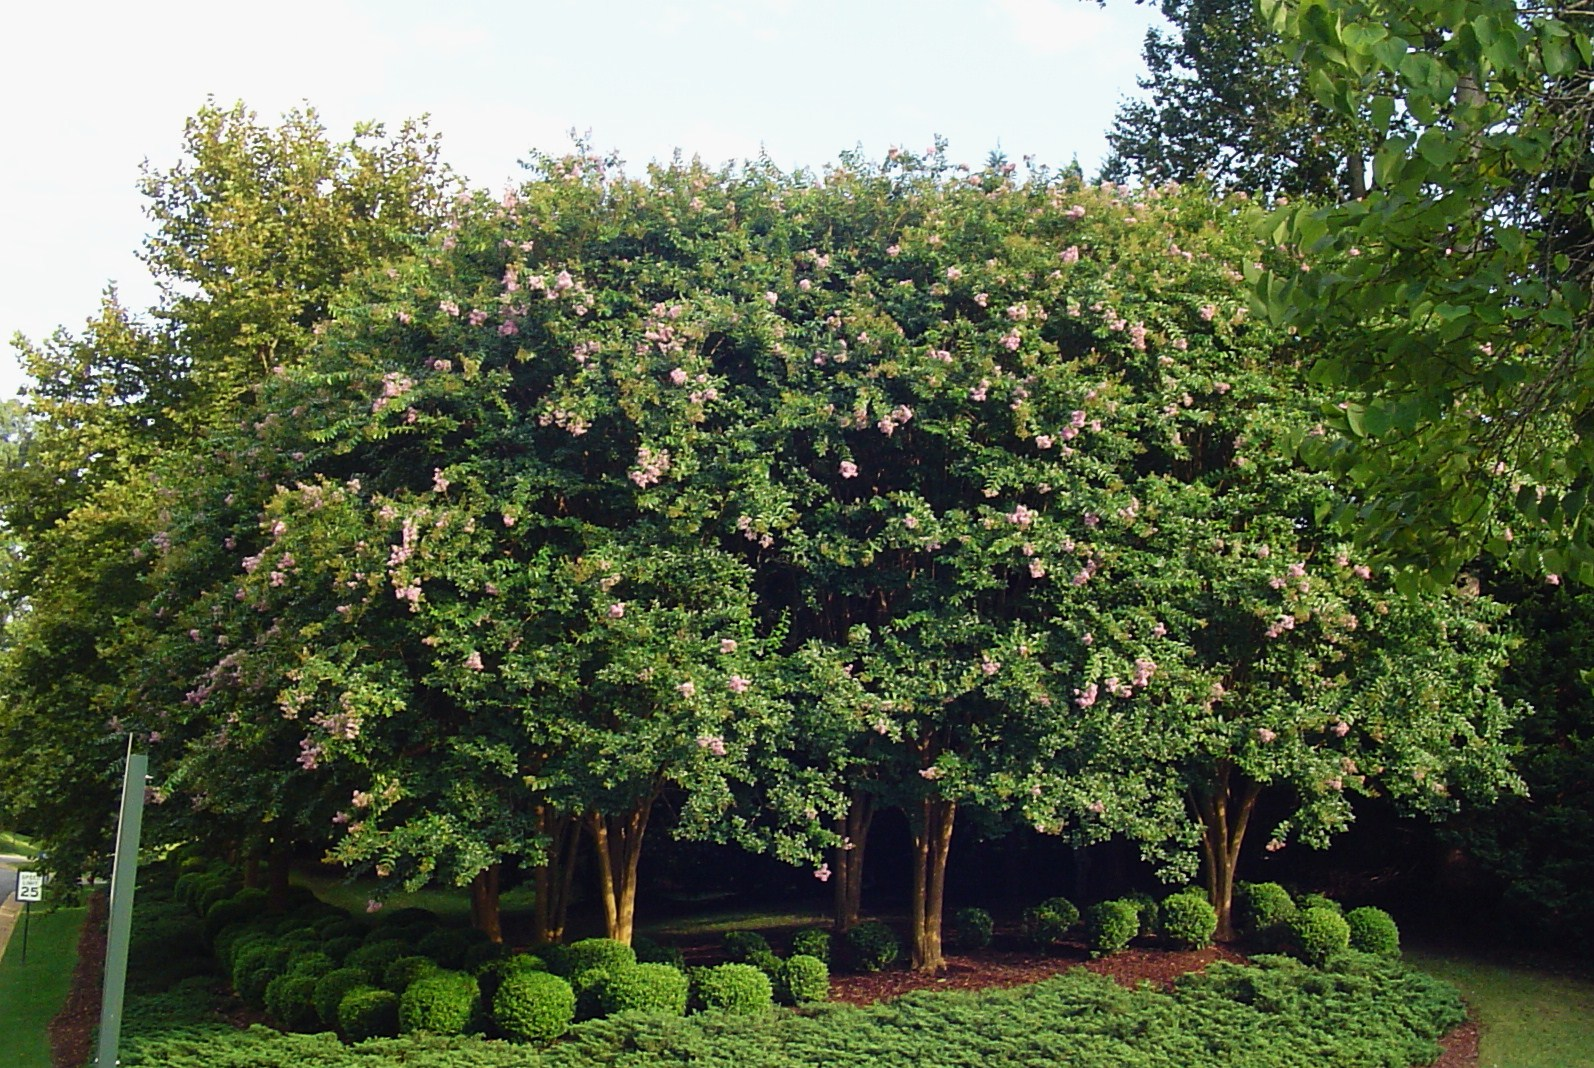 crepe myrtle trees line the entrance to the holly hills in